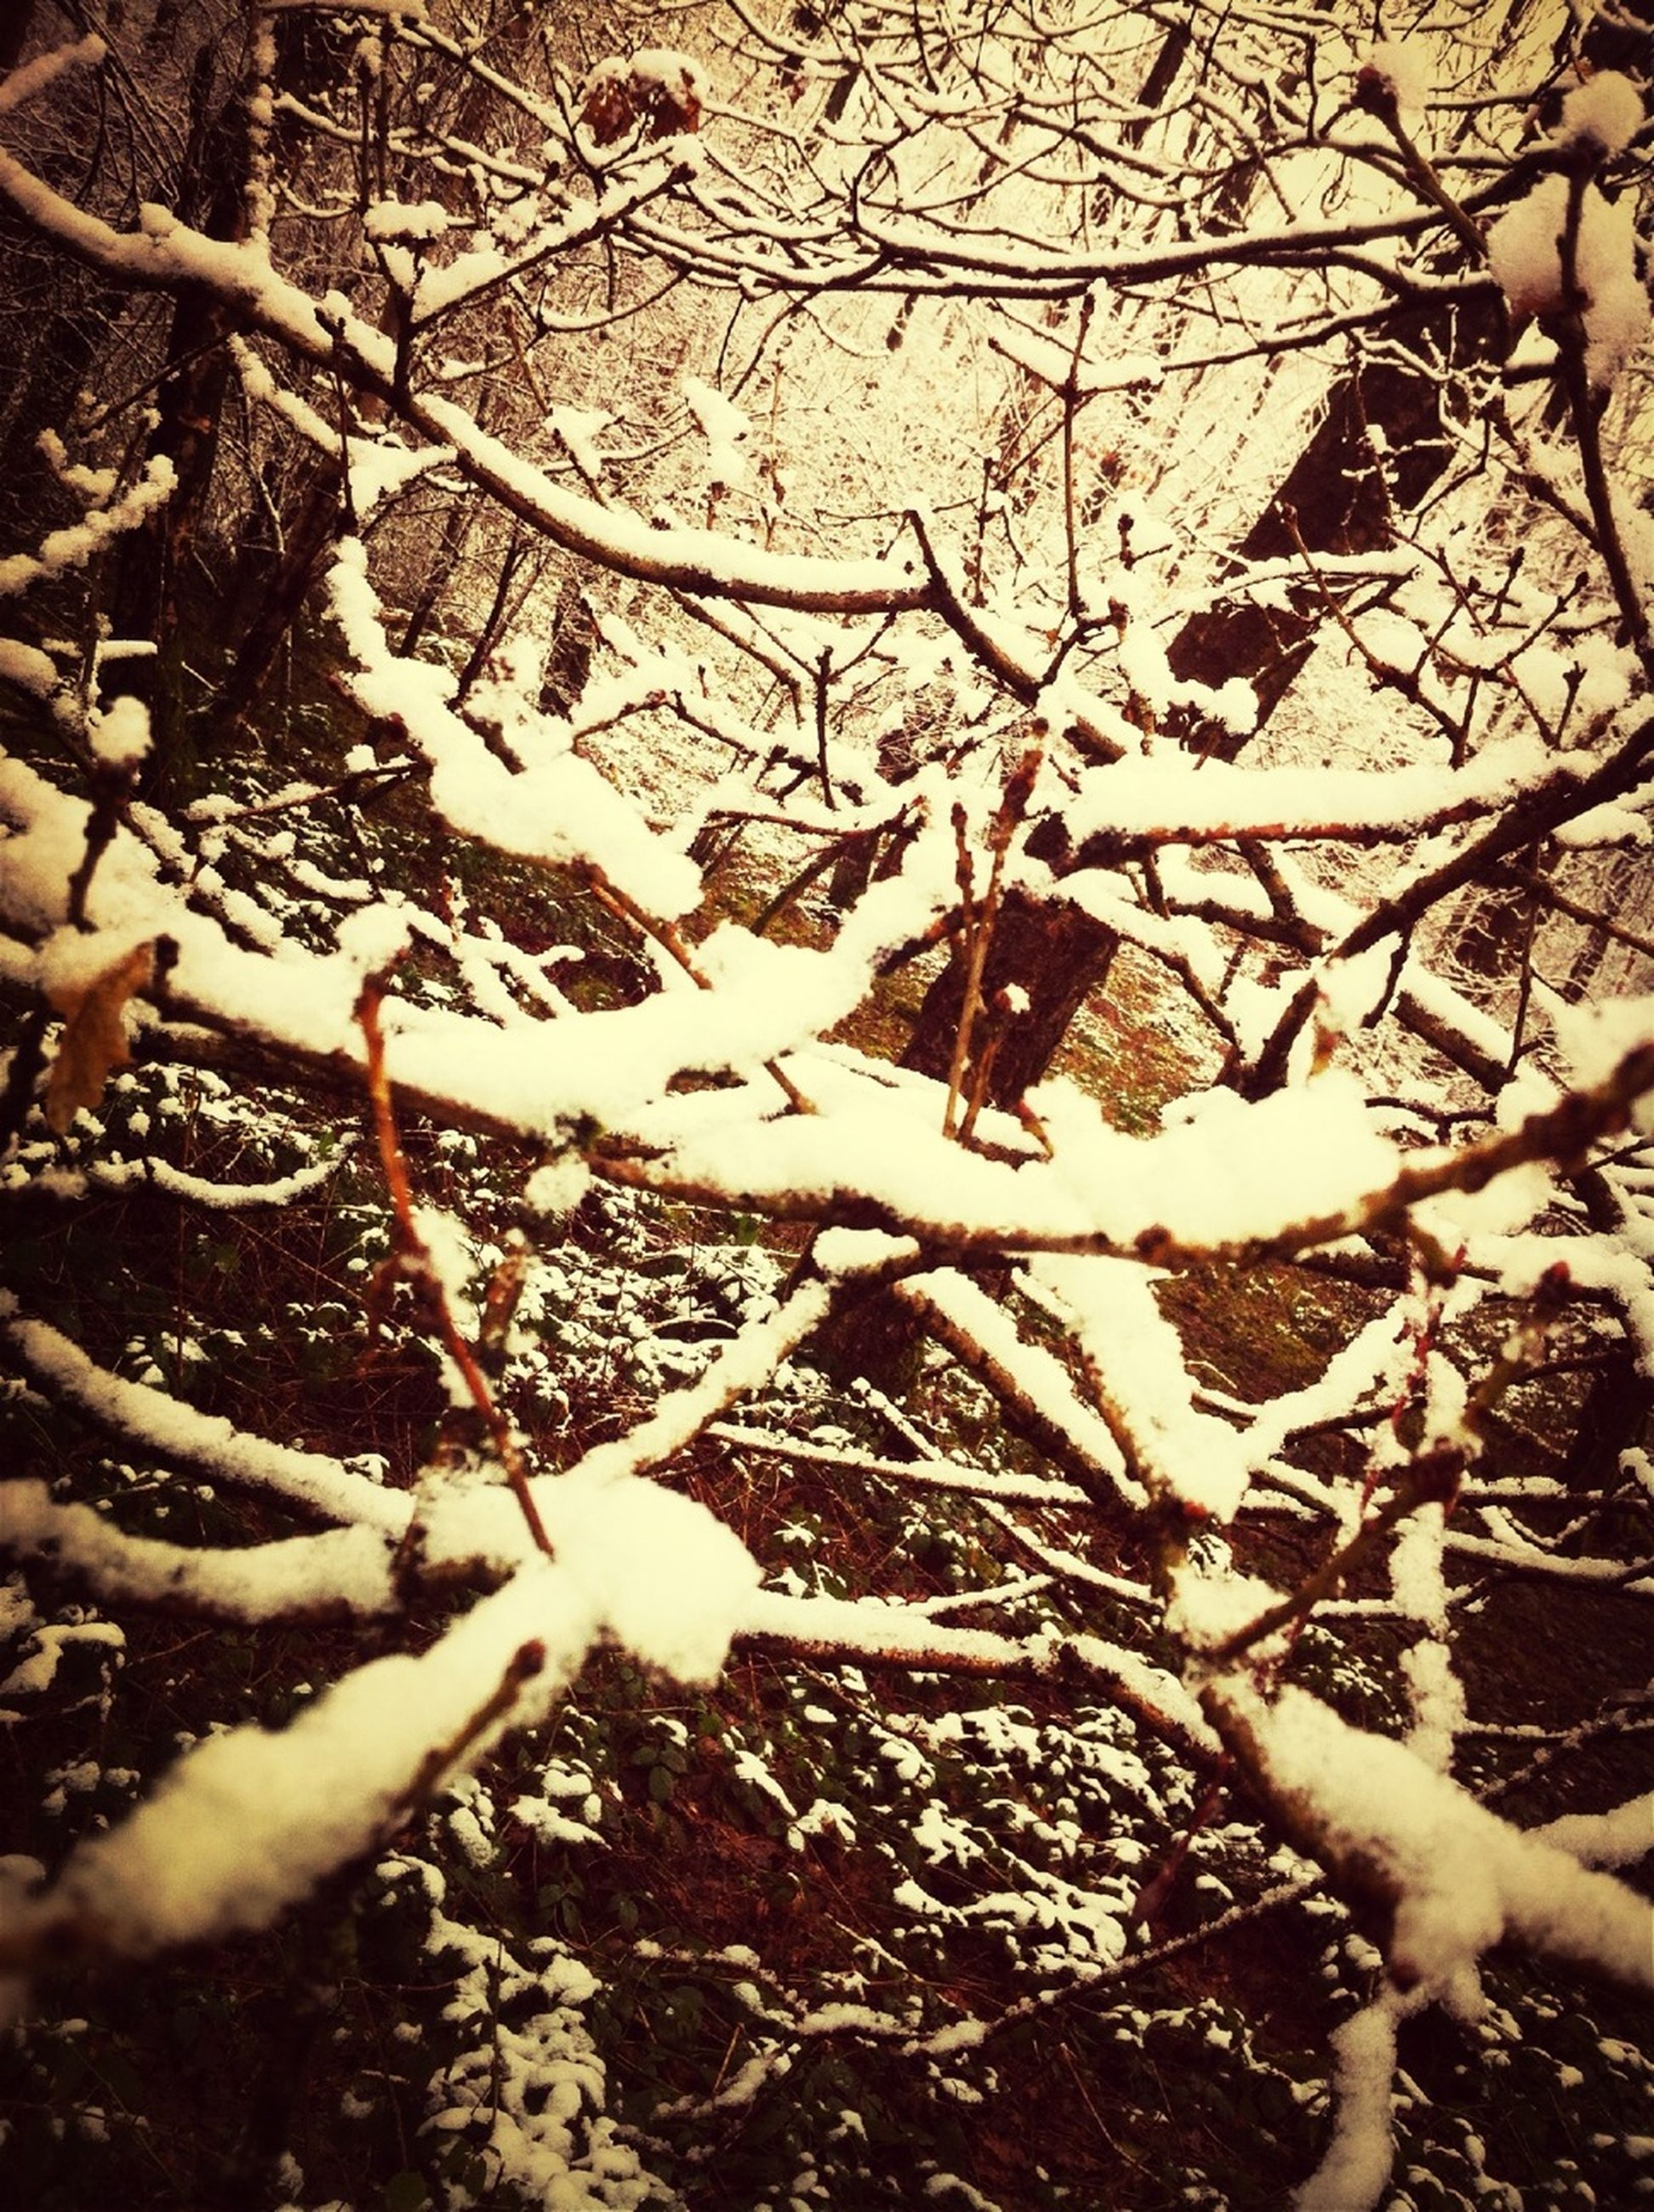 tree, season, branch, bare tree, winter, cold temperature, snow, nature, autumn, lifestyles, leaf, tree trunk, covering, high angle view, leisure activity, day, outdoors, frozen